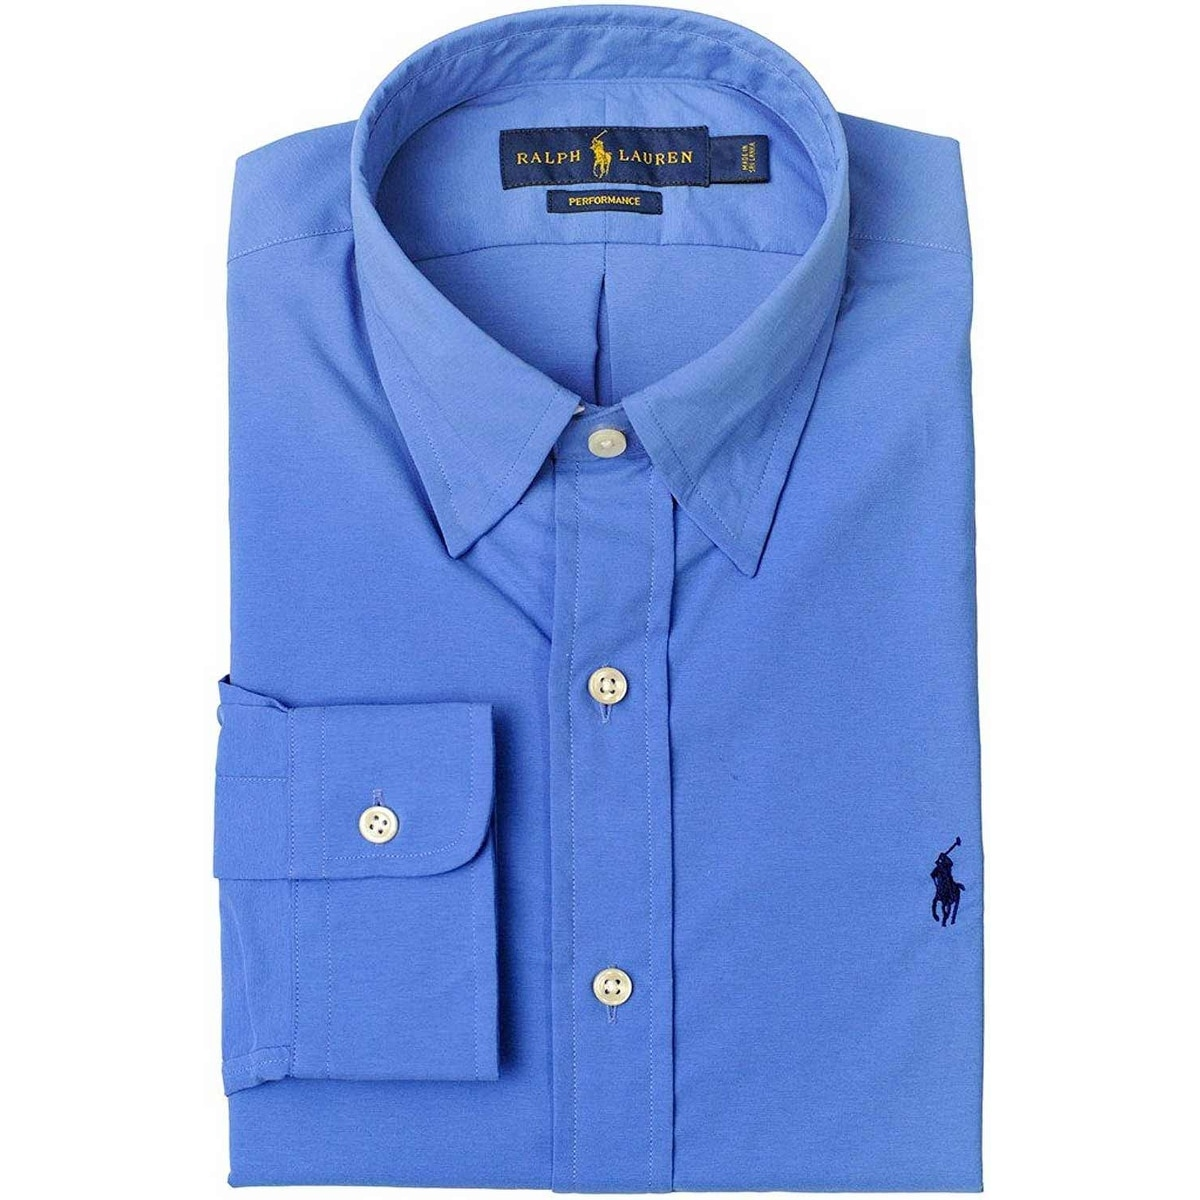 f671cc27 Shop Polo Ralph Lauren Big and Tall Long Sleeve Shirt Aerial Blue 3XLT Tall  - Free Shipping Today - Overstock - 18102307